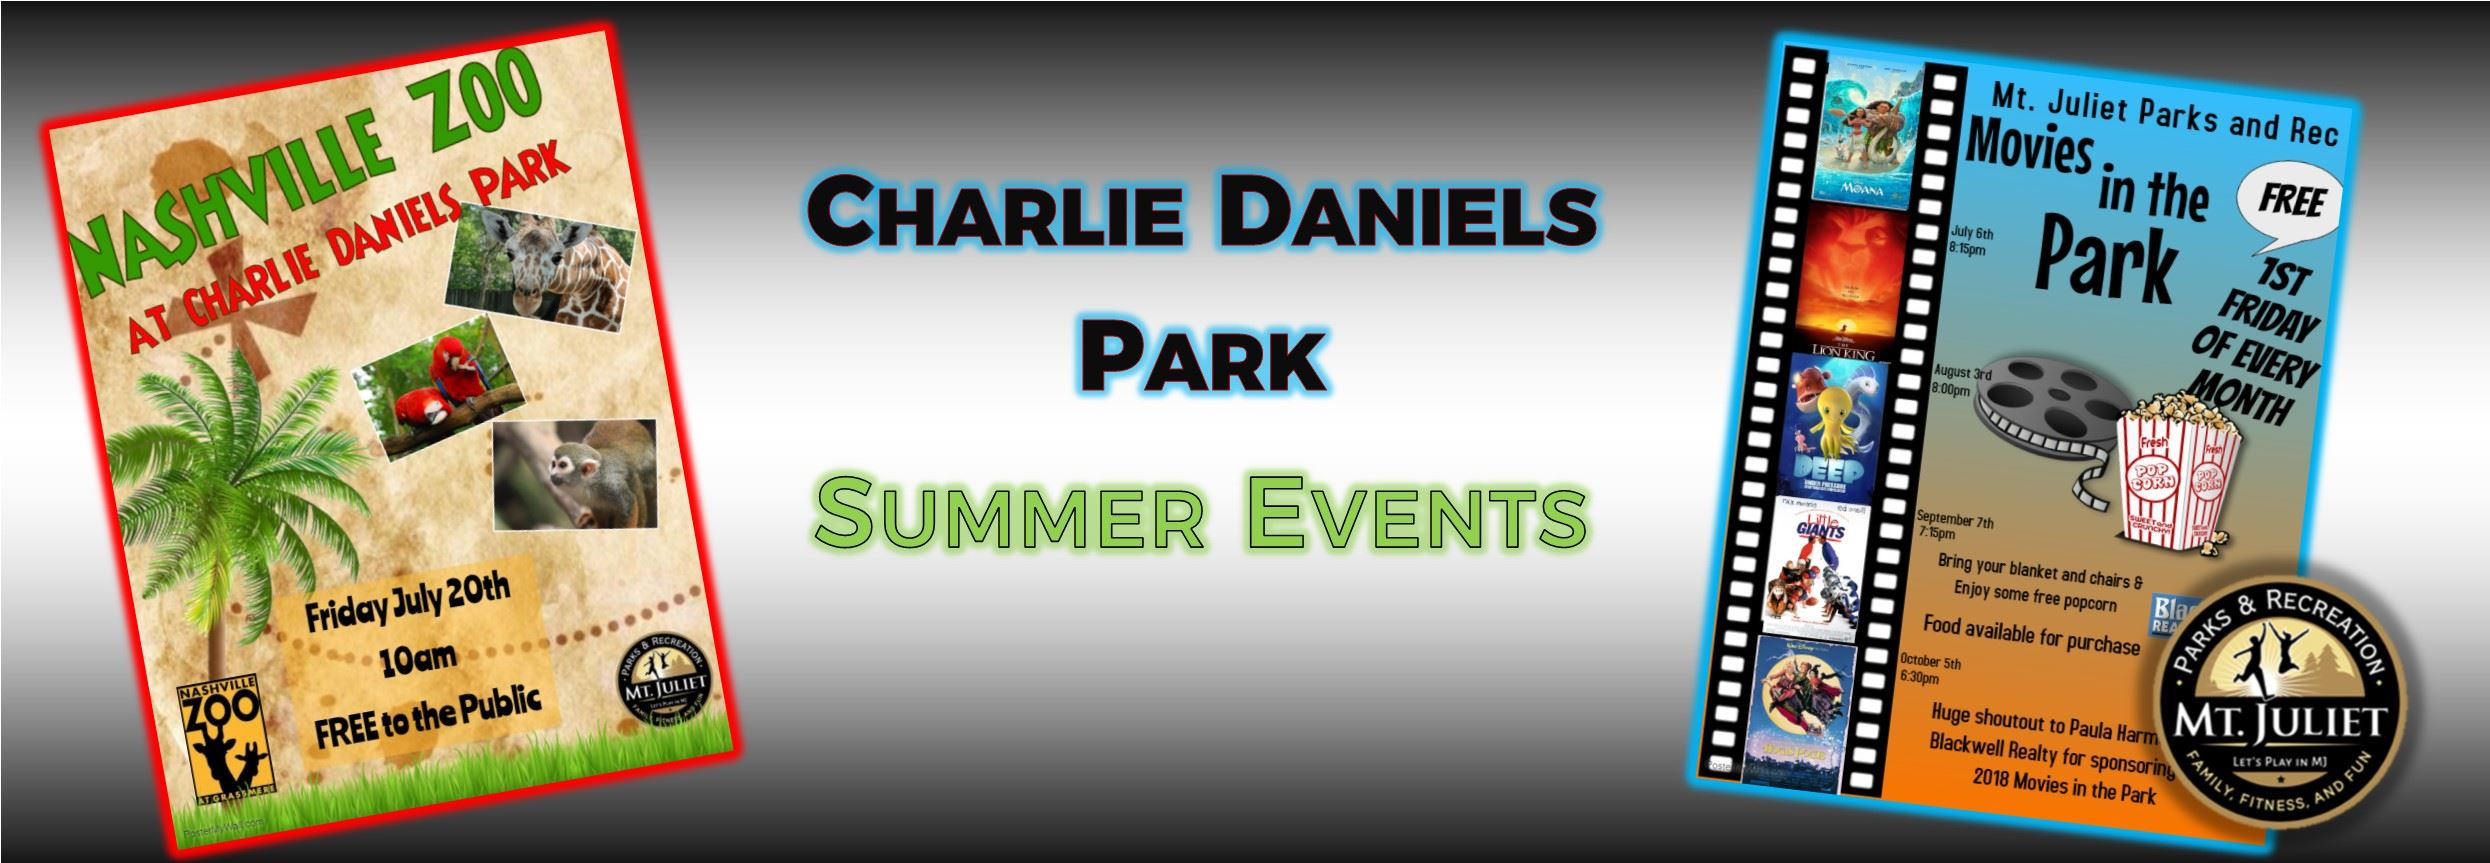 Summer events banner 2